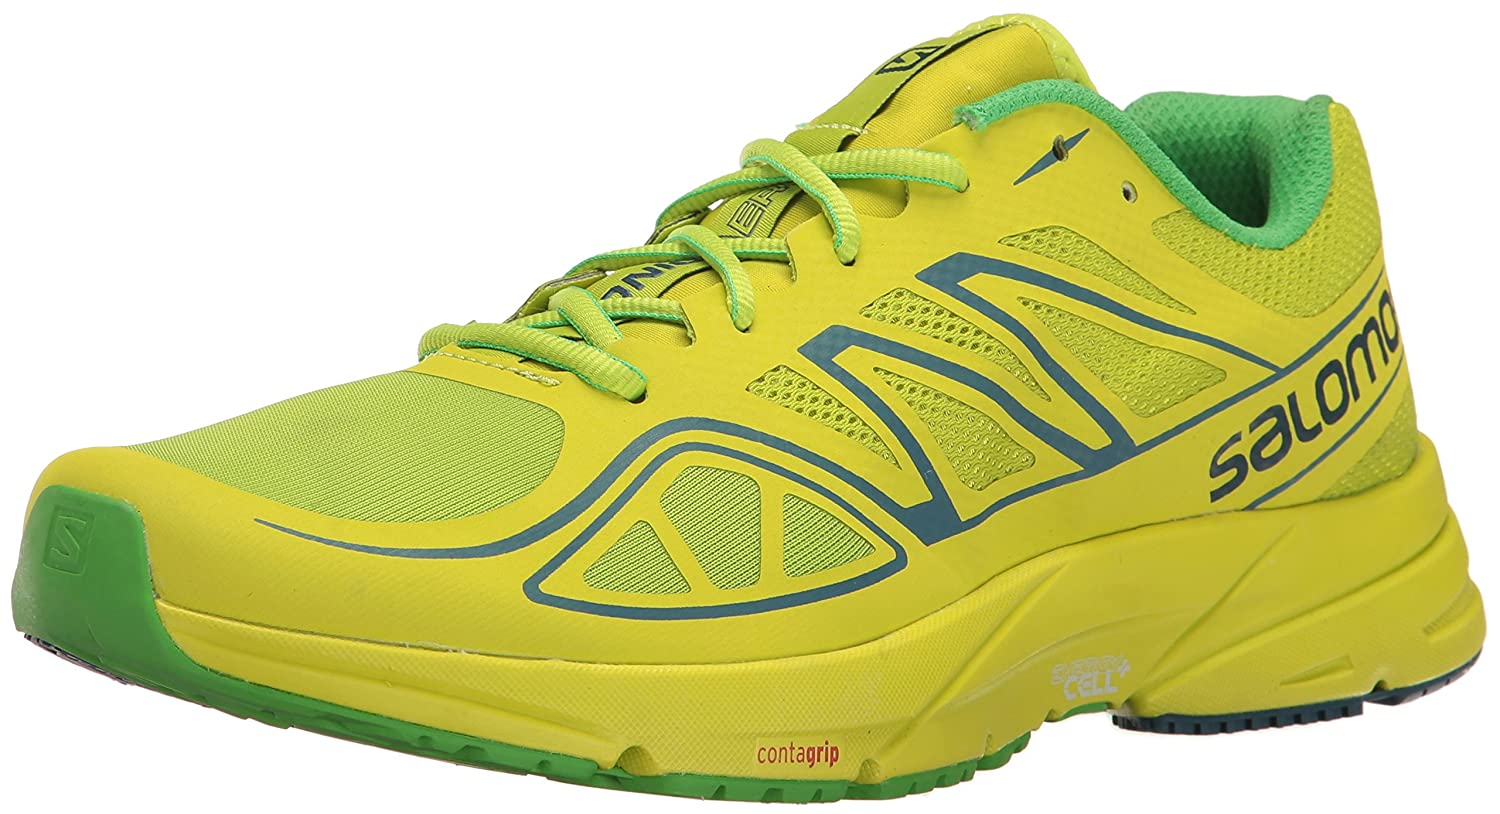 Salomon Men's Sonic Aero Running Shoe Salomon Footwear SONIC AERO-M